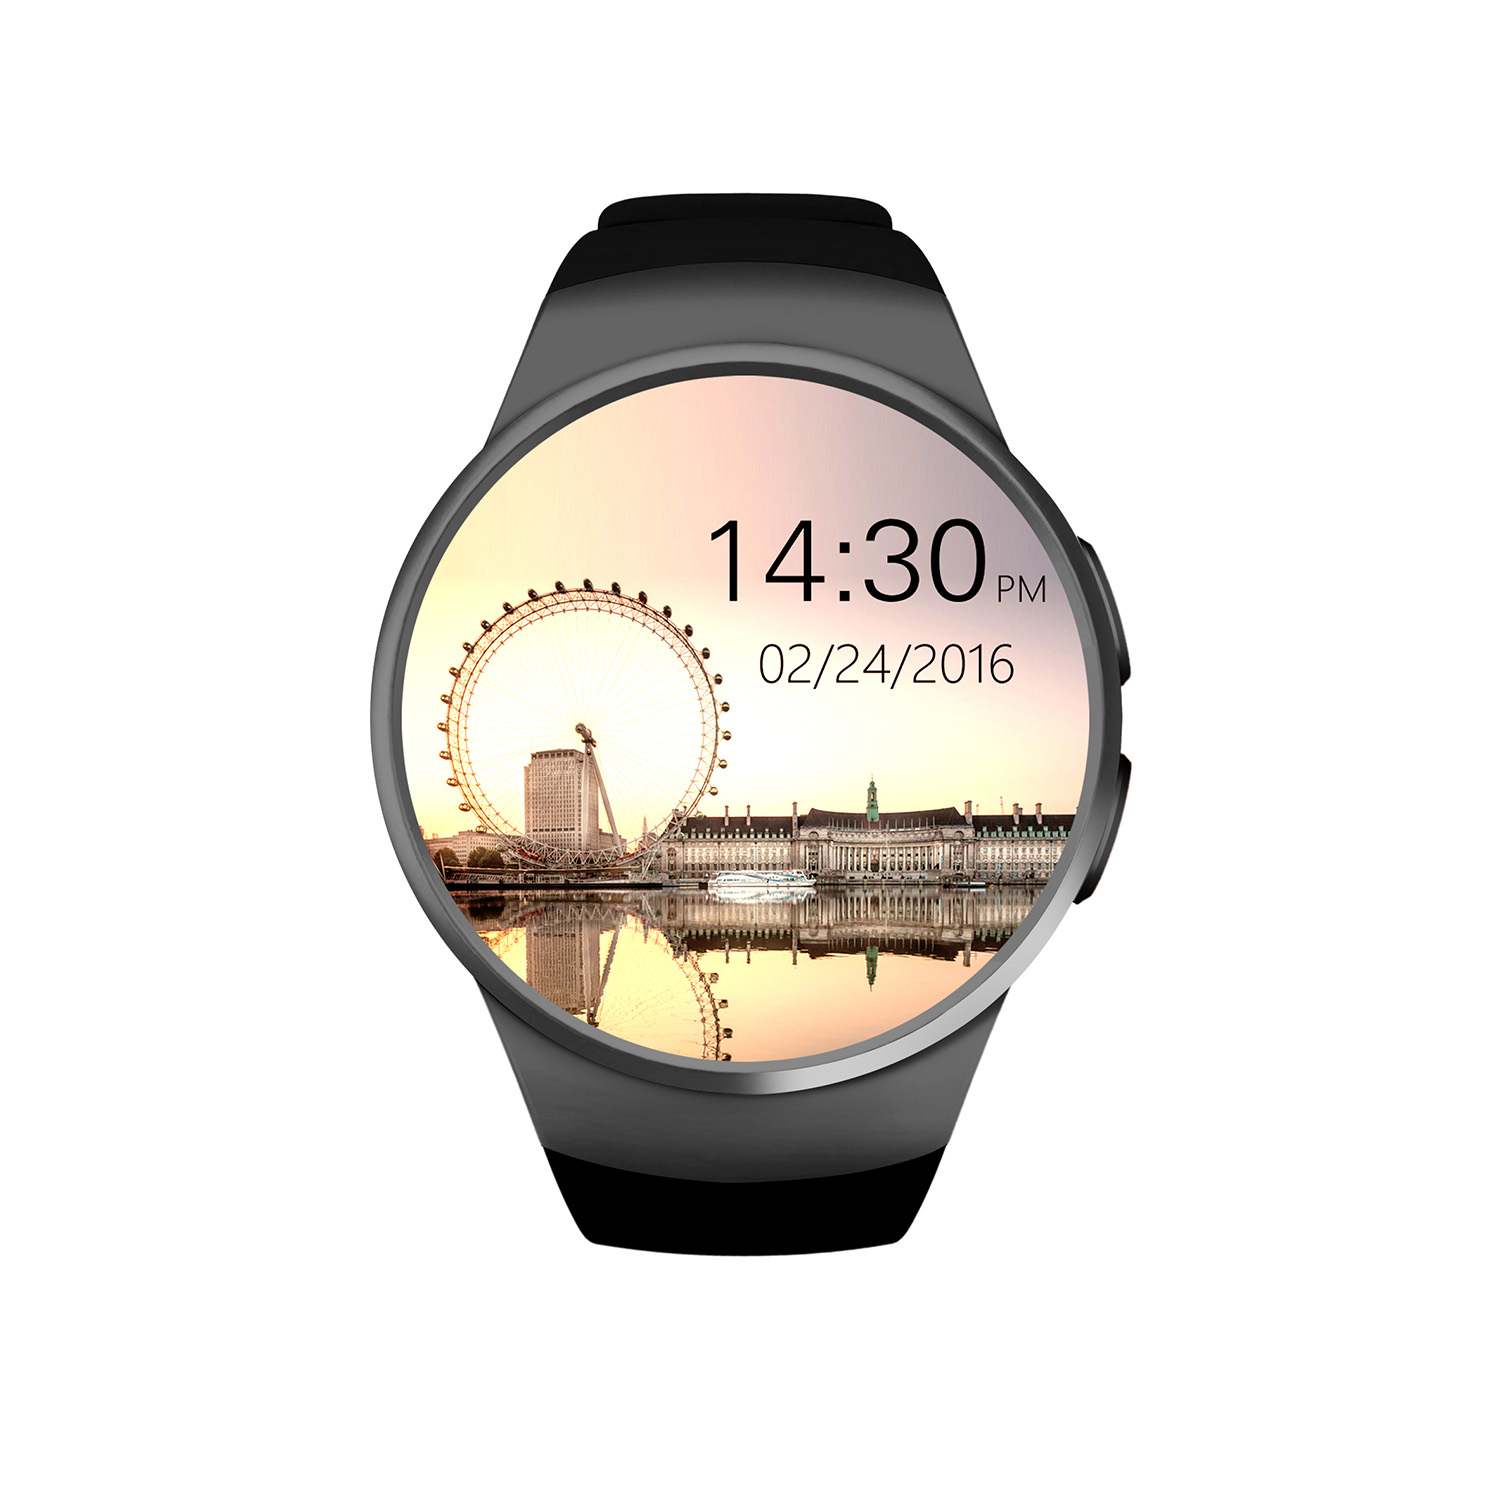 GPCT Smart Watch - Bluetooth [Android/iOS], Touch Screen, Water Resistant, Workout/Sleep/Heart Rate Monitor - Black